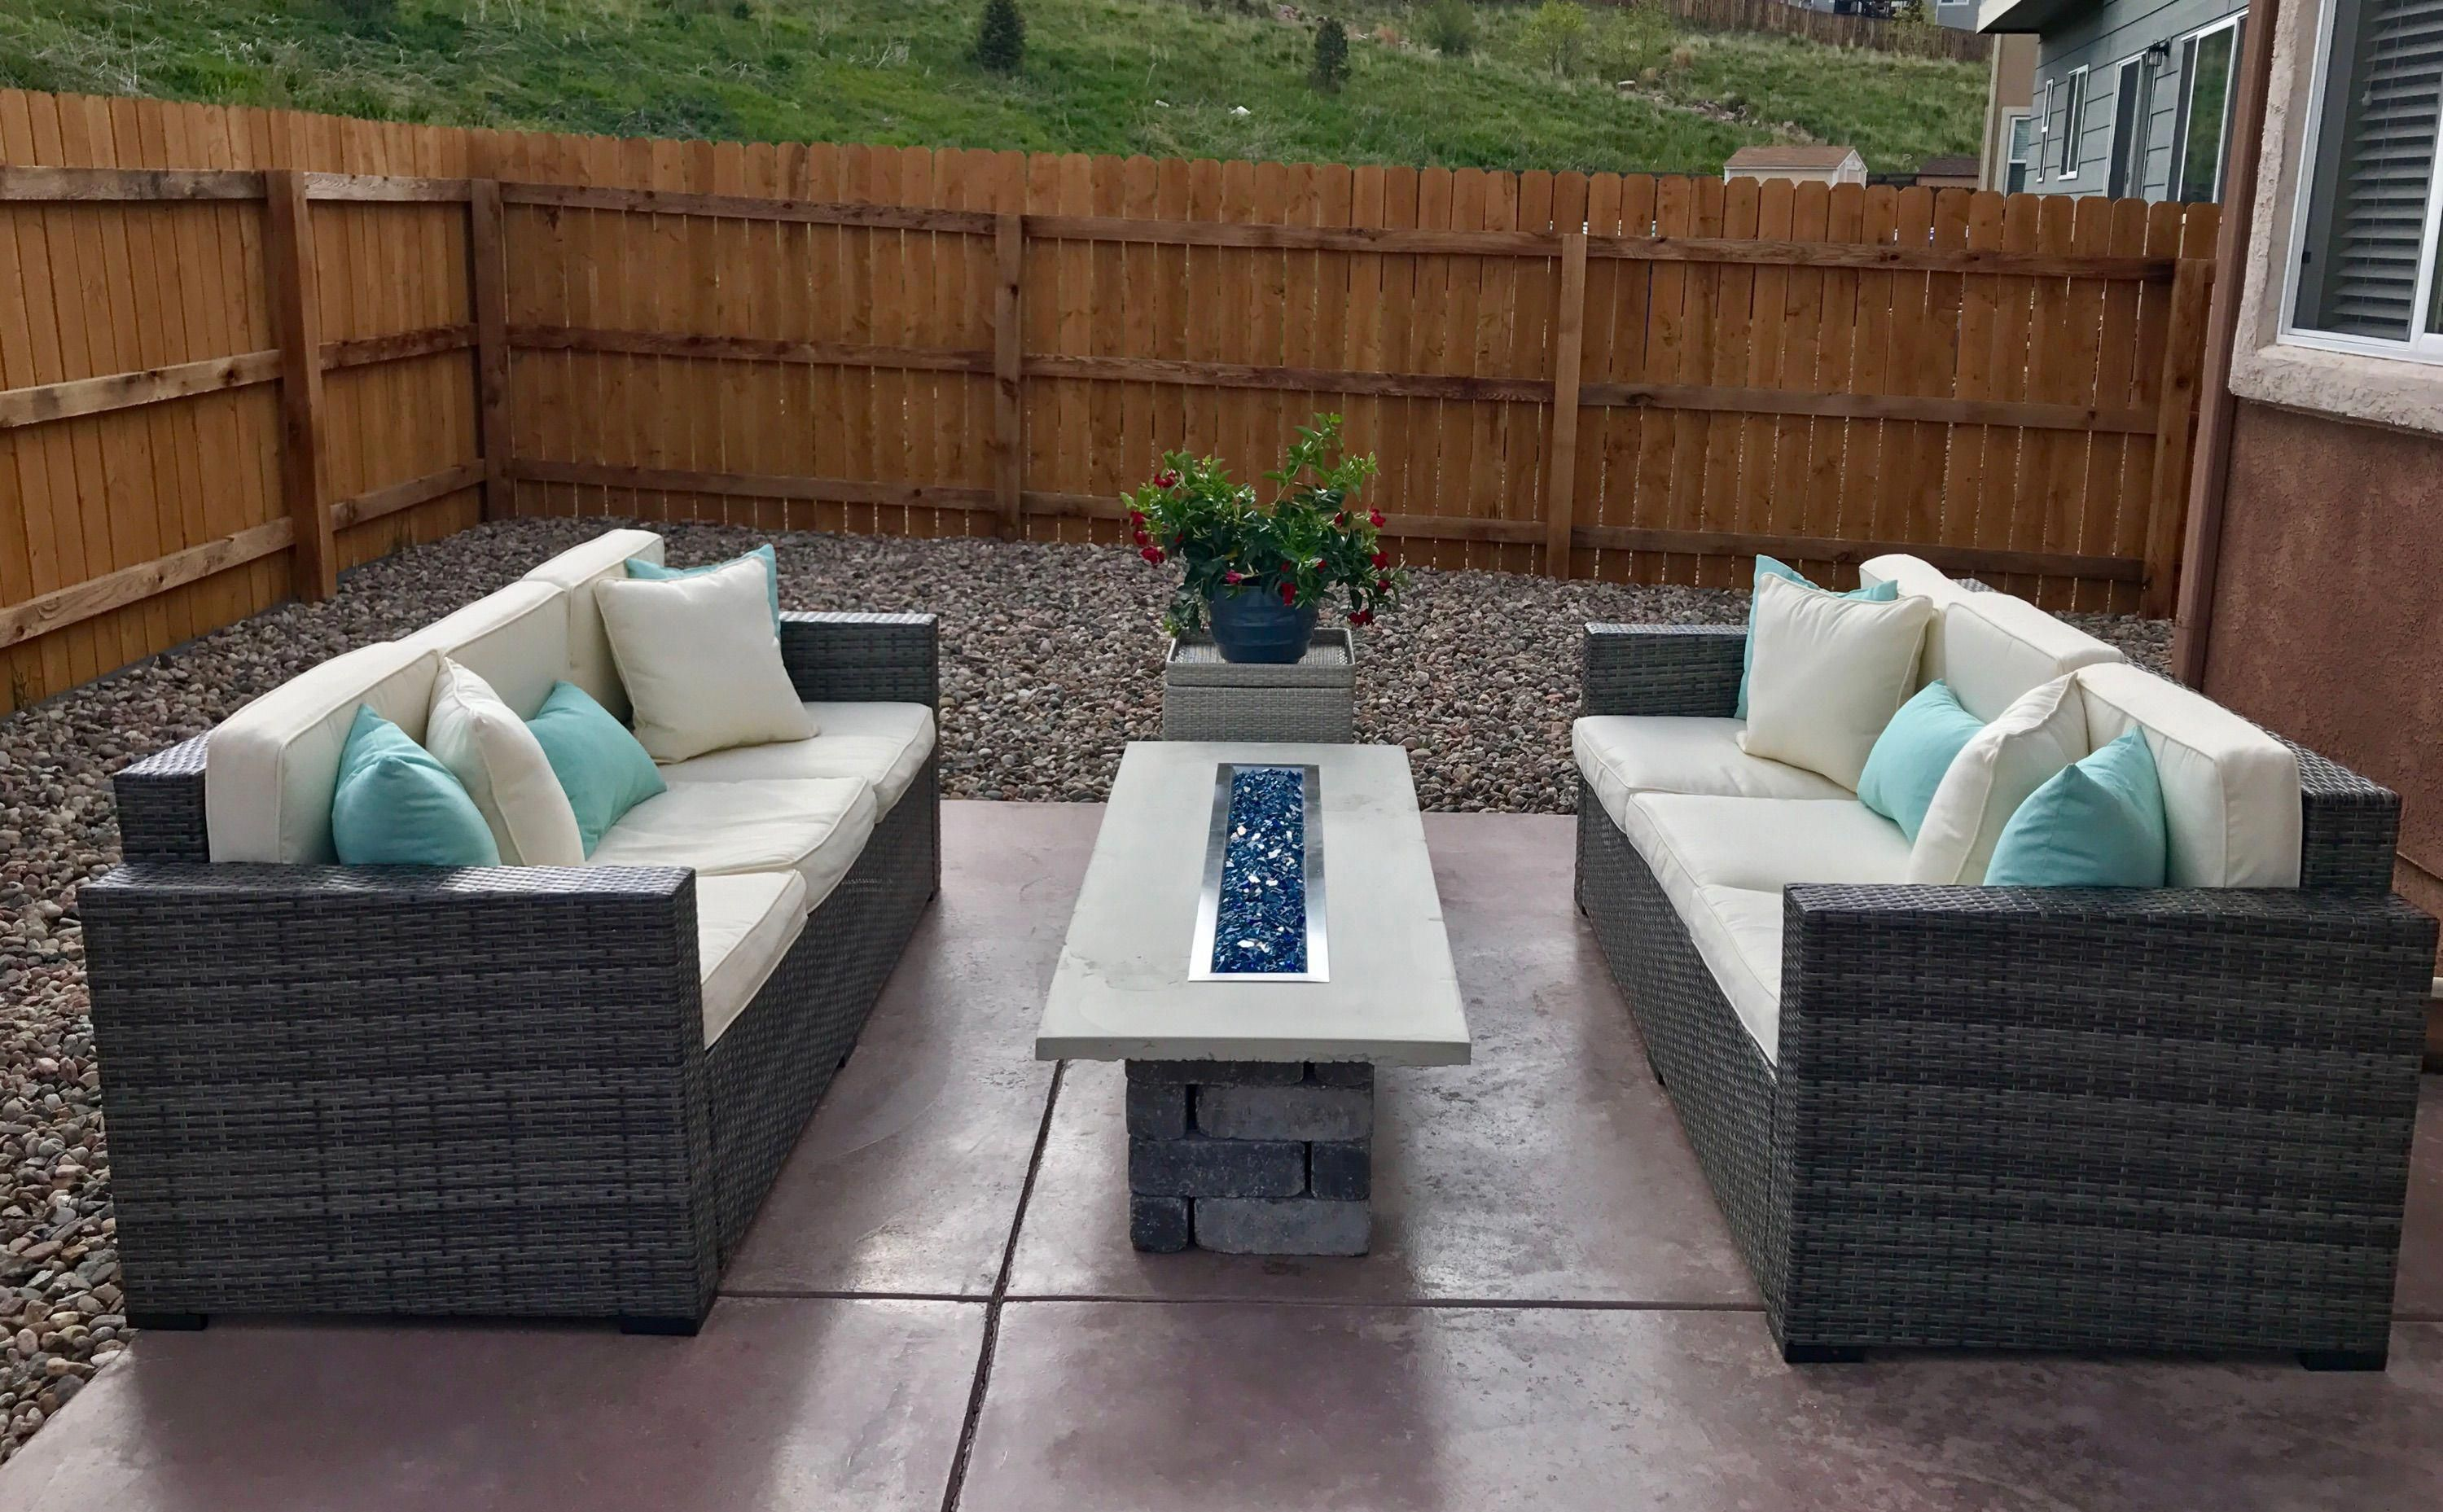 New Backyard Ft Custom Self Made Gas Fire Pit Table Out Of Poured